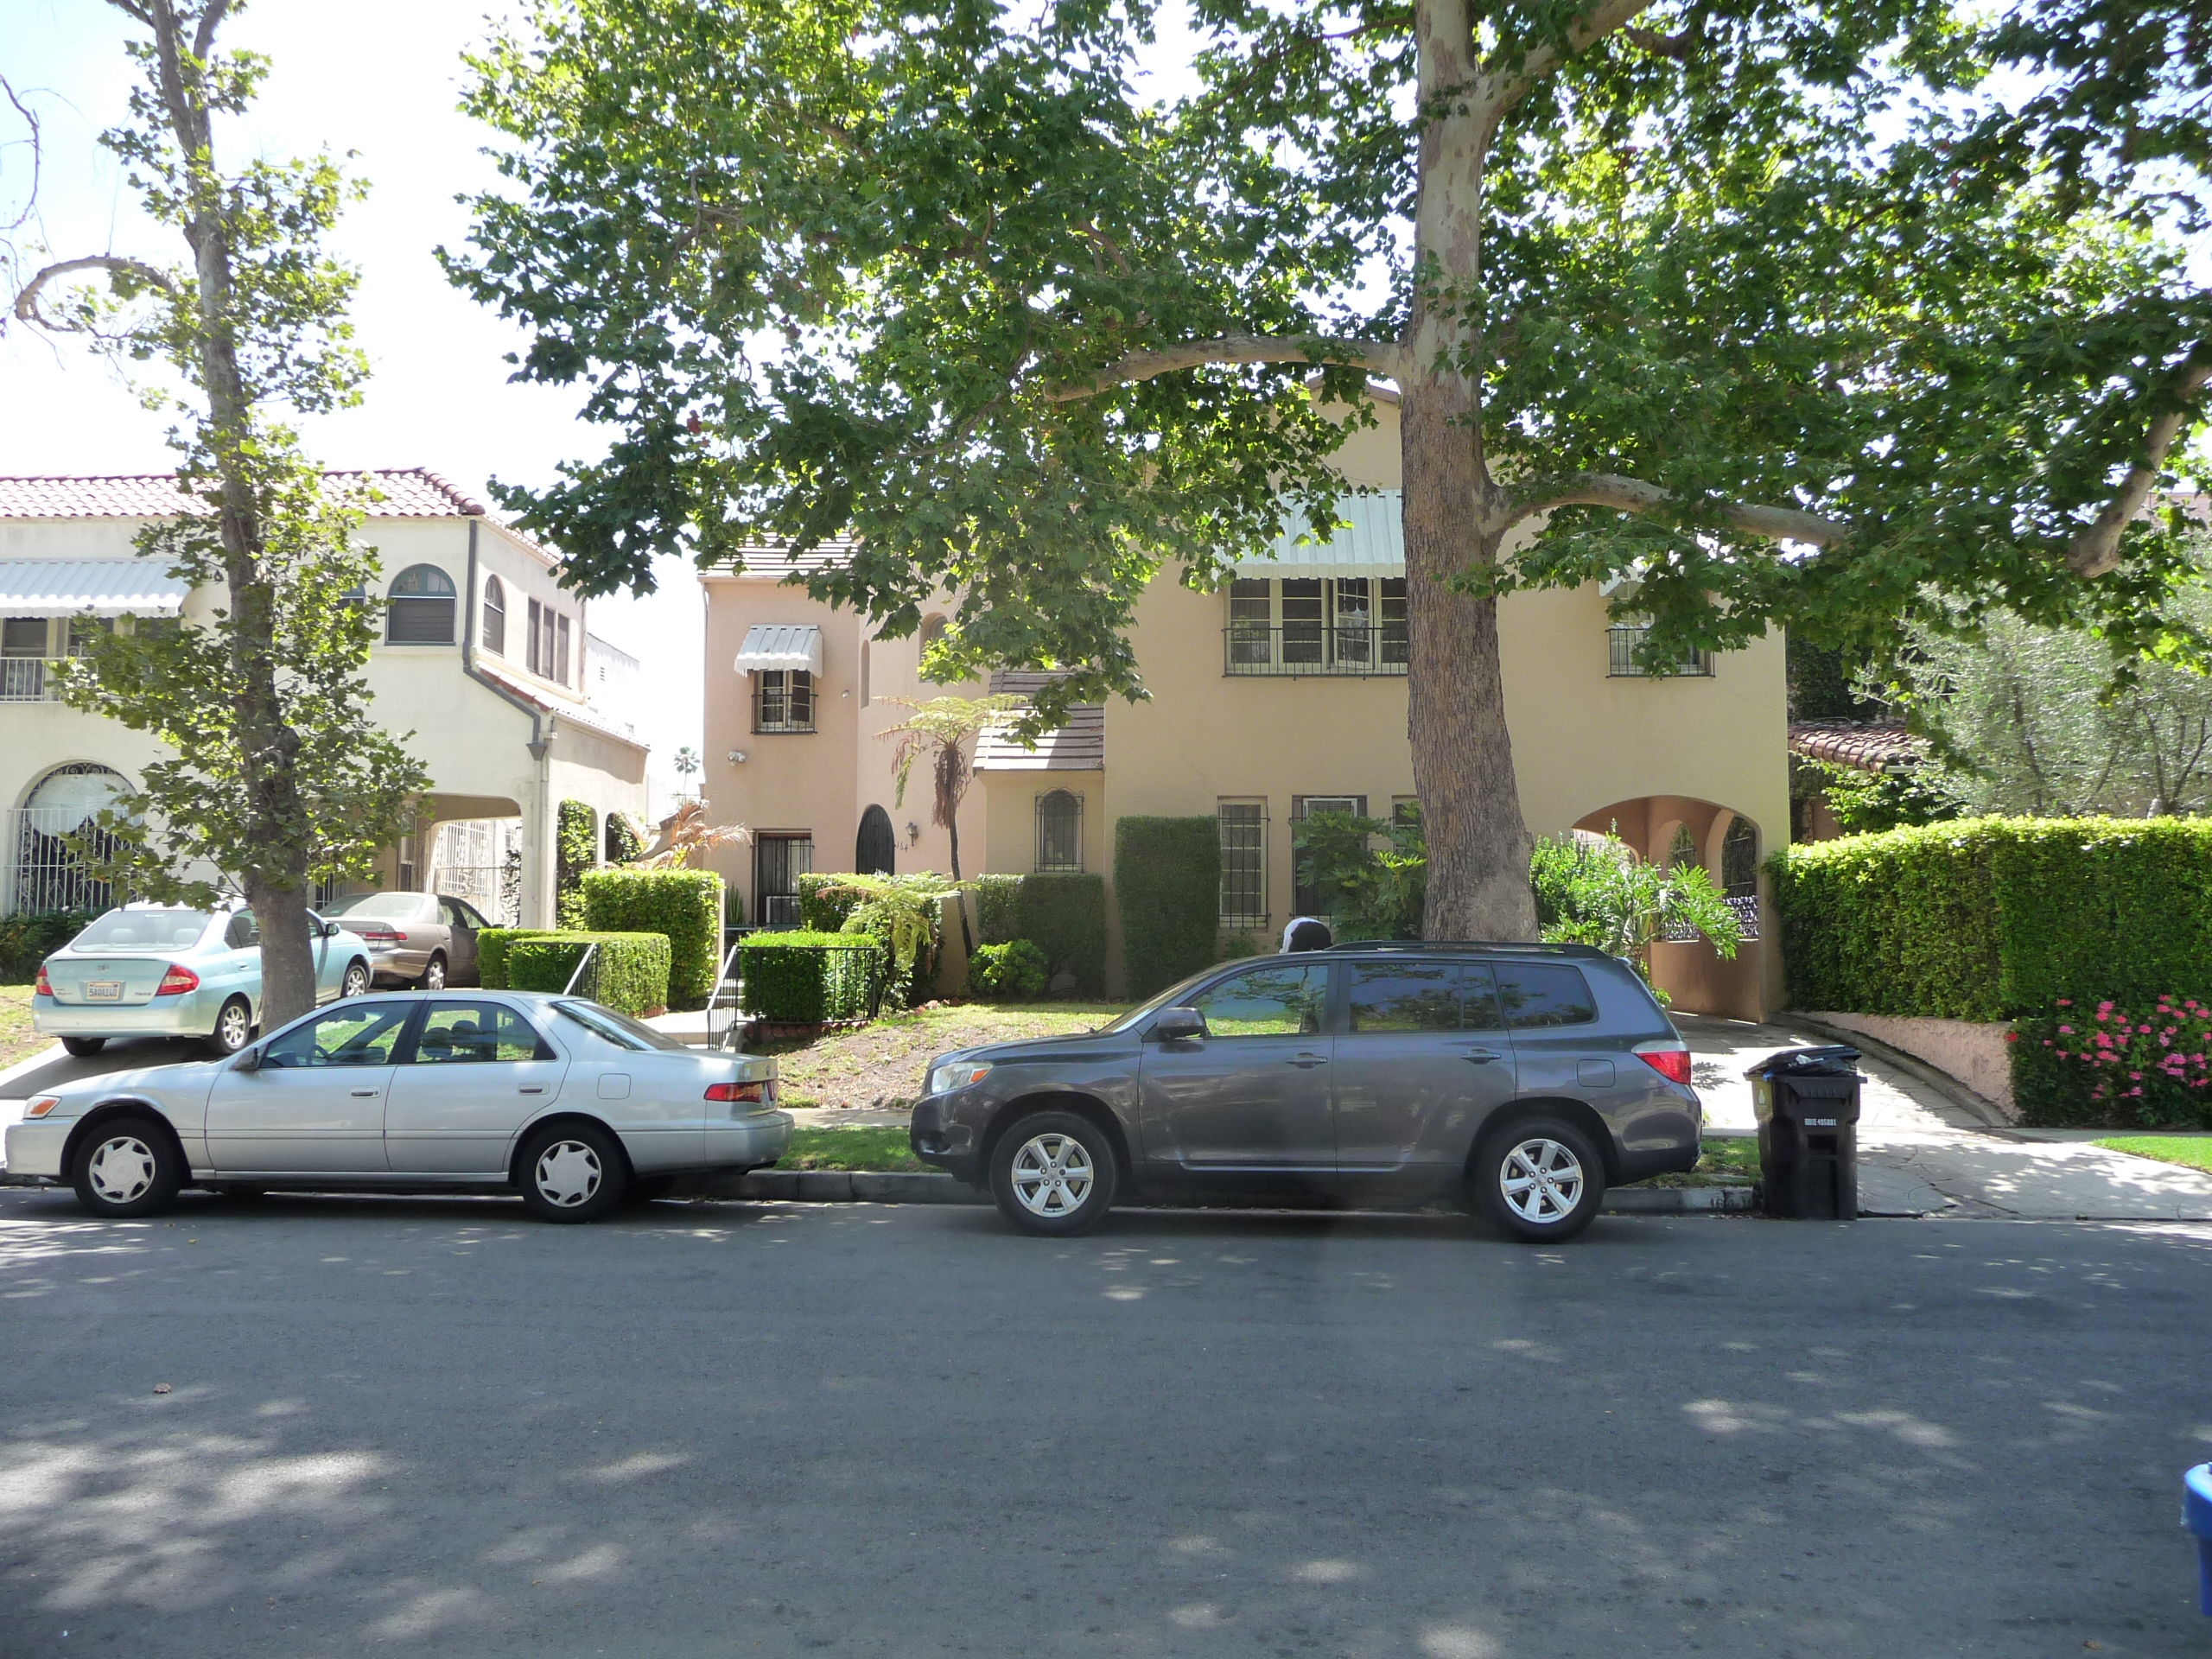 164 S MANSFIELD AVE - PHOTO